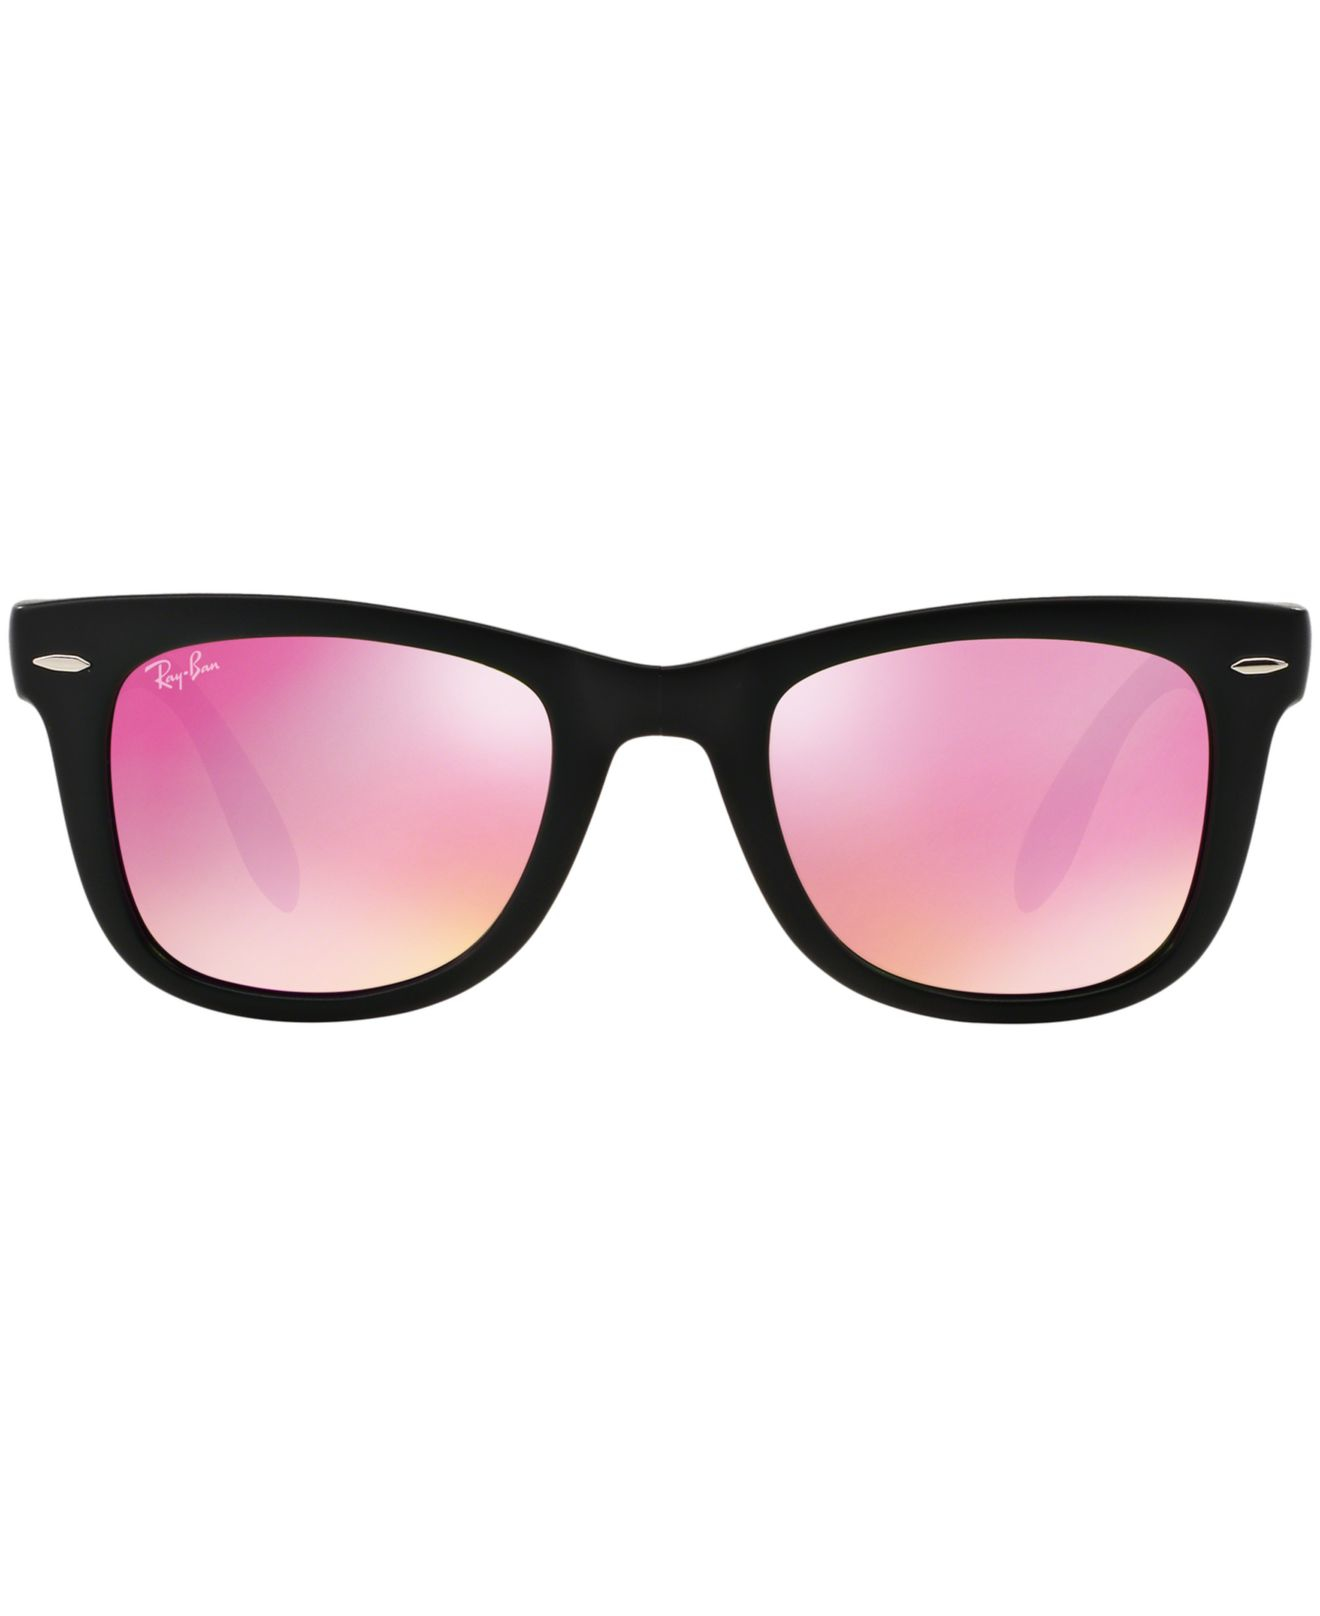 ray ban unisex rb4105 folding wayfarer sunglasses  gallery. previously sold at: macy's · women's wayfarer sunglasses